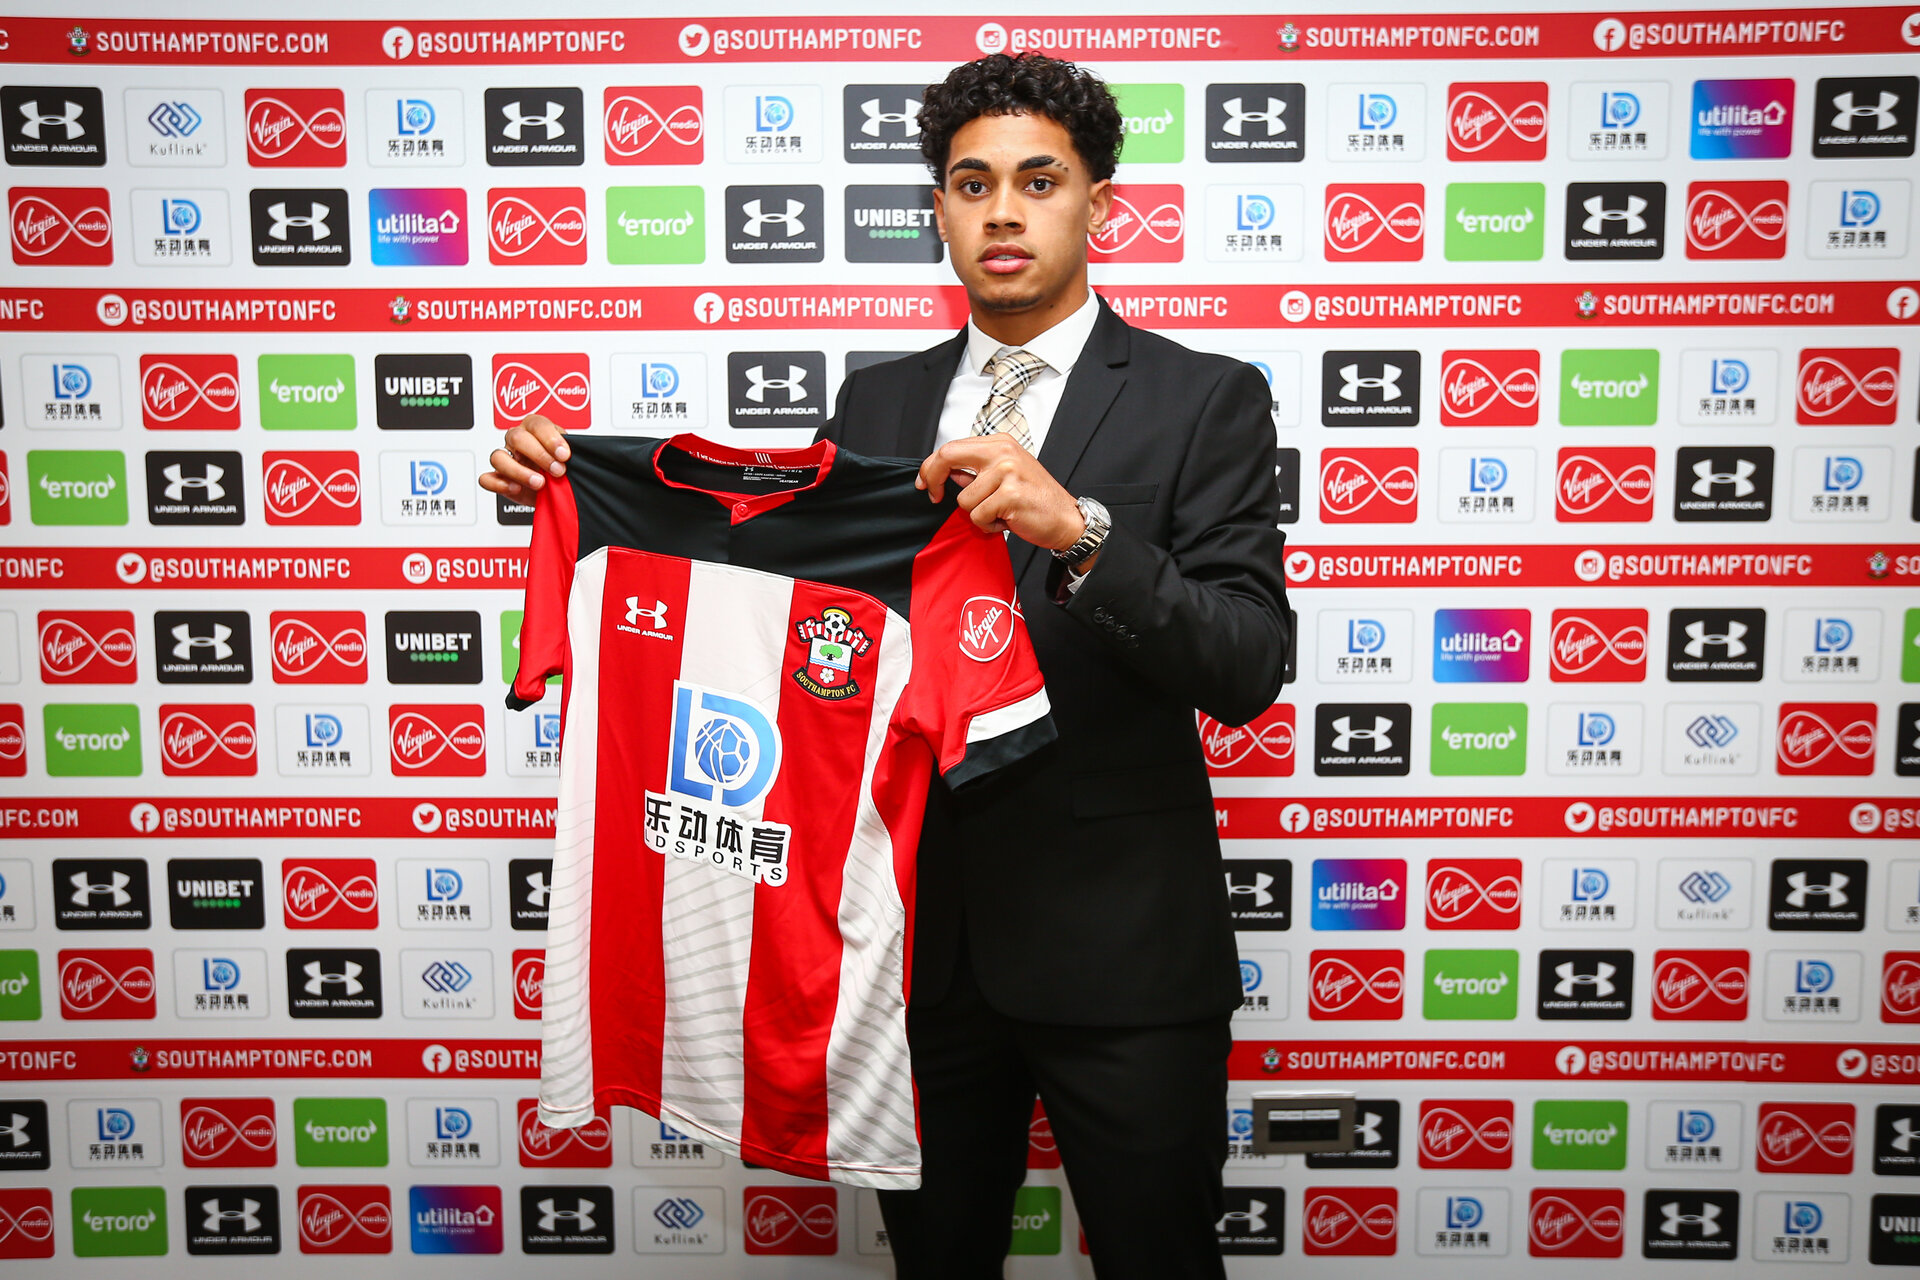 SOUTHAMPTON, ENGLAND - JULY 01: Christian Norton signs his pro contract extension with Southampton FC on July 01, 2018 pictured at St Marys Stadium, Southampton, England. (Photo by James Bridle - Southampton FC/Southampton FC via Getty Images)